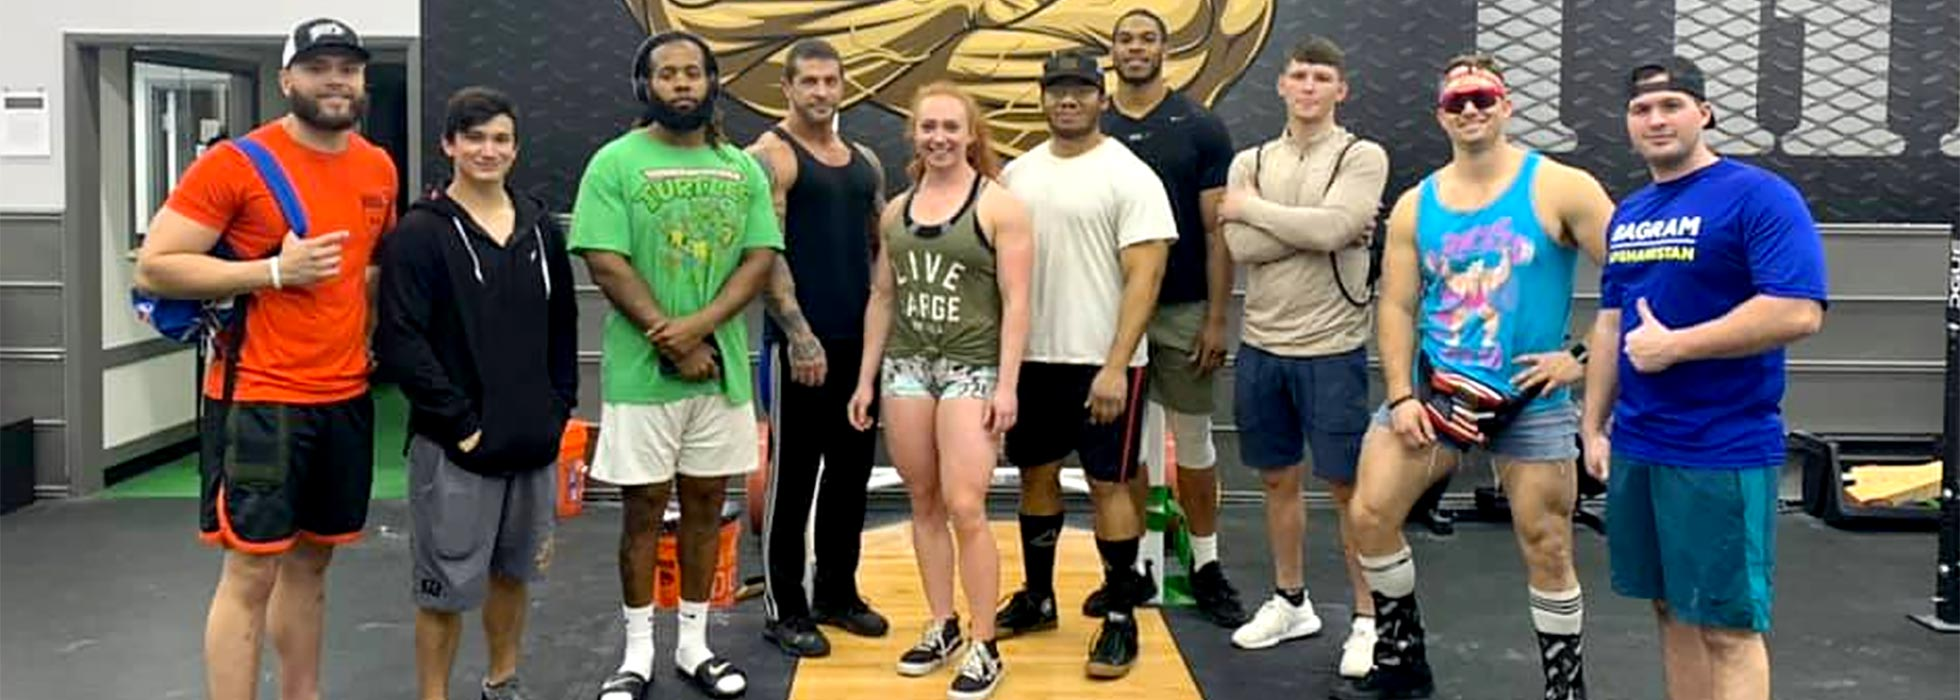 Top 5 Best Gyms To Join near Pearl MS, Top 5 Best Gyms To Join near Brandon MS, Top 5 Best Gyms To Join near Crossgates MS, Top 5 Best Gyms To Join near Flowood MS, Top 5 Best Gyms To Join near Jackson MS, Top 5 Best Gyms To Join near Brooksville FL